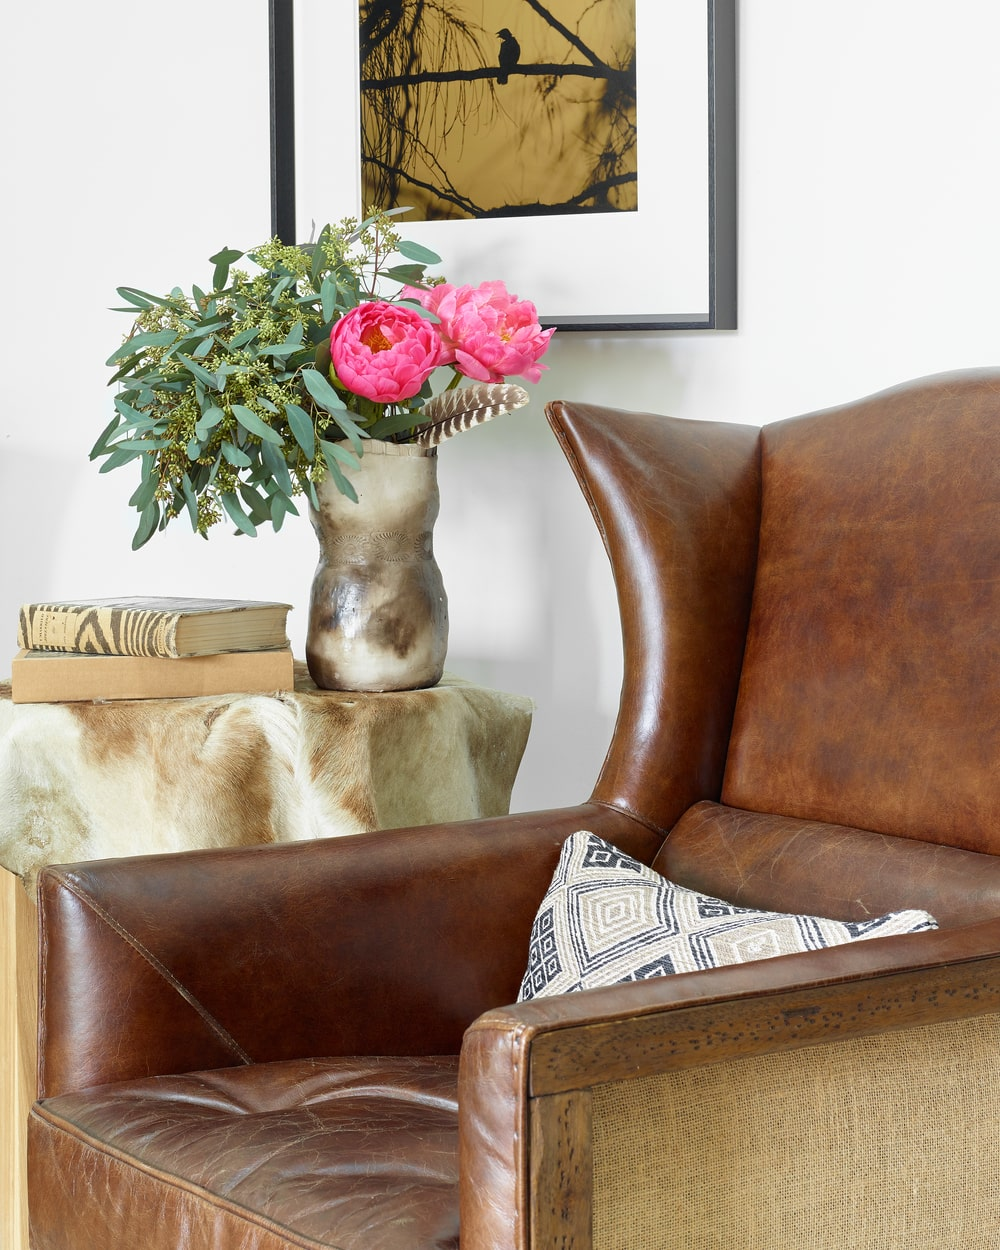 This is a close look at a comfortable reading nook with a leather armchair beside a small side table.